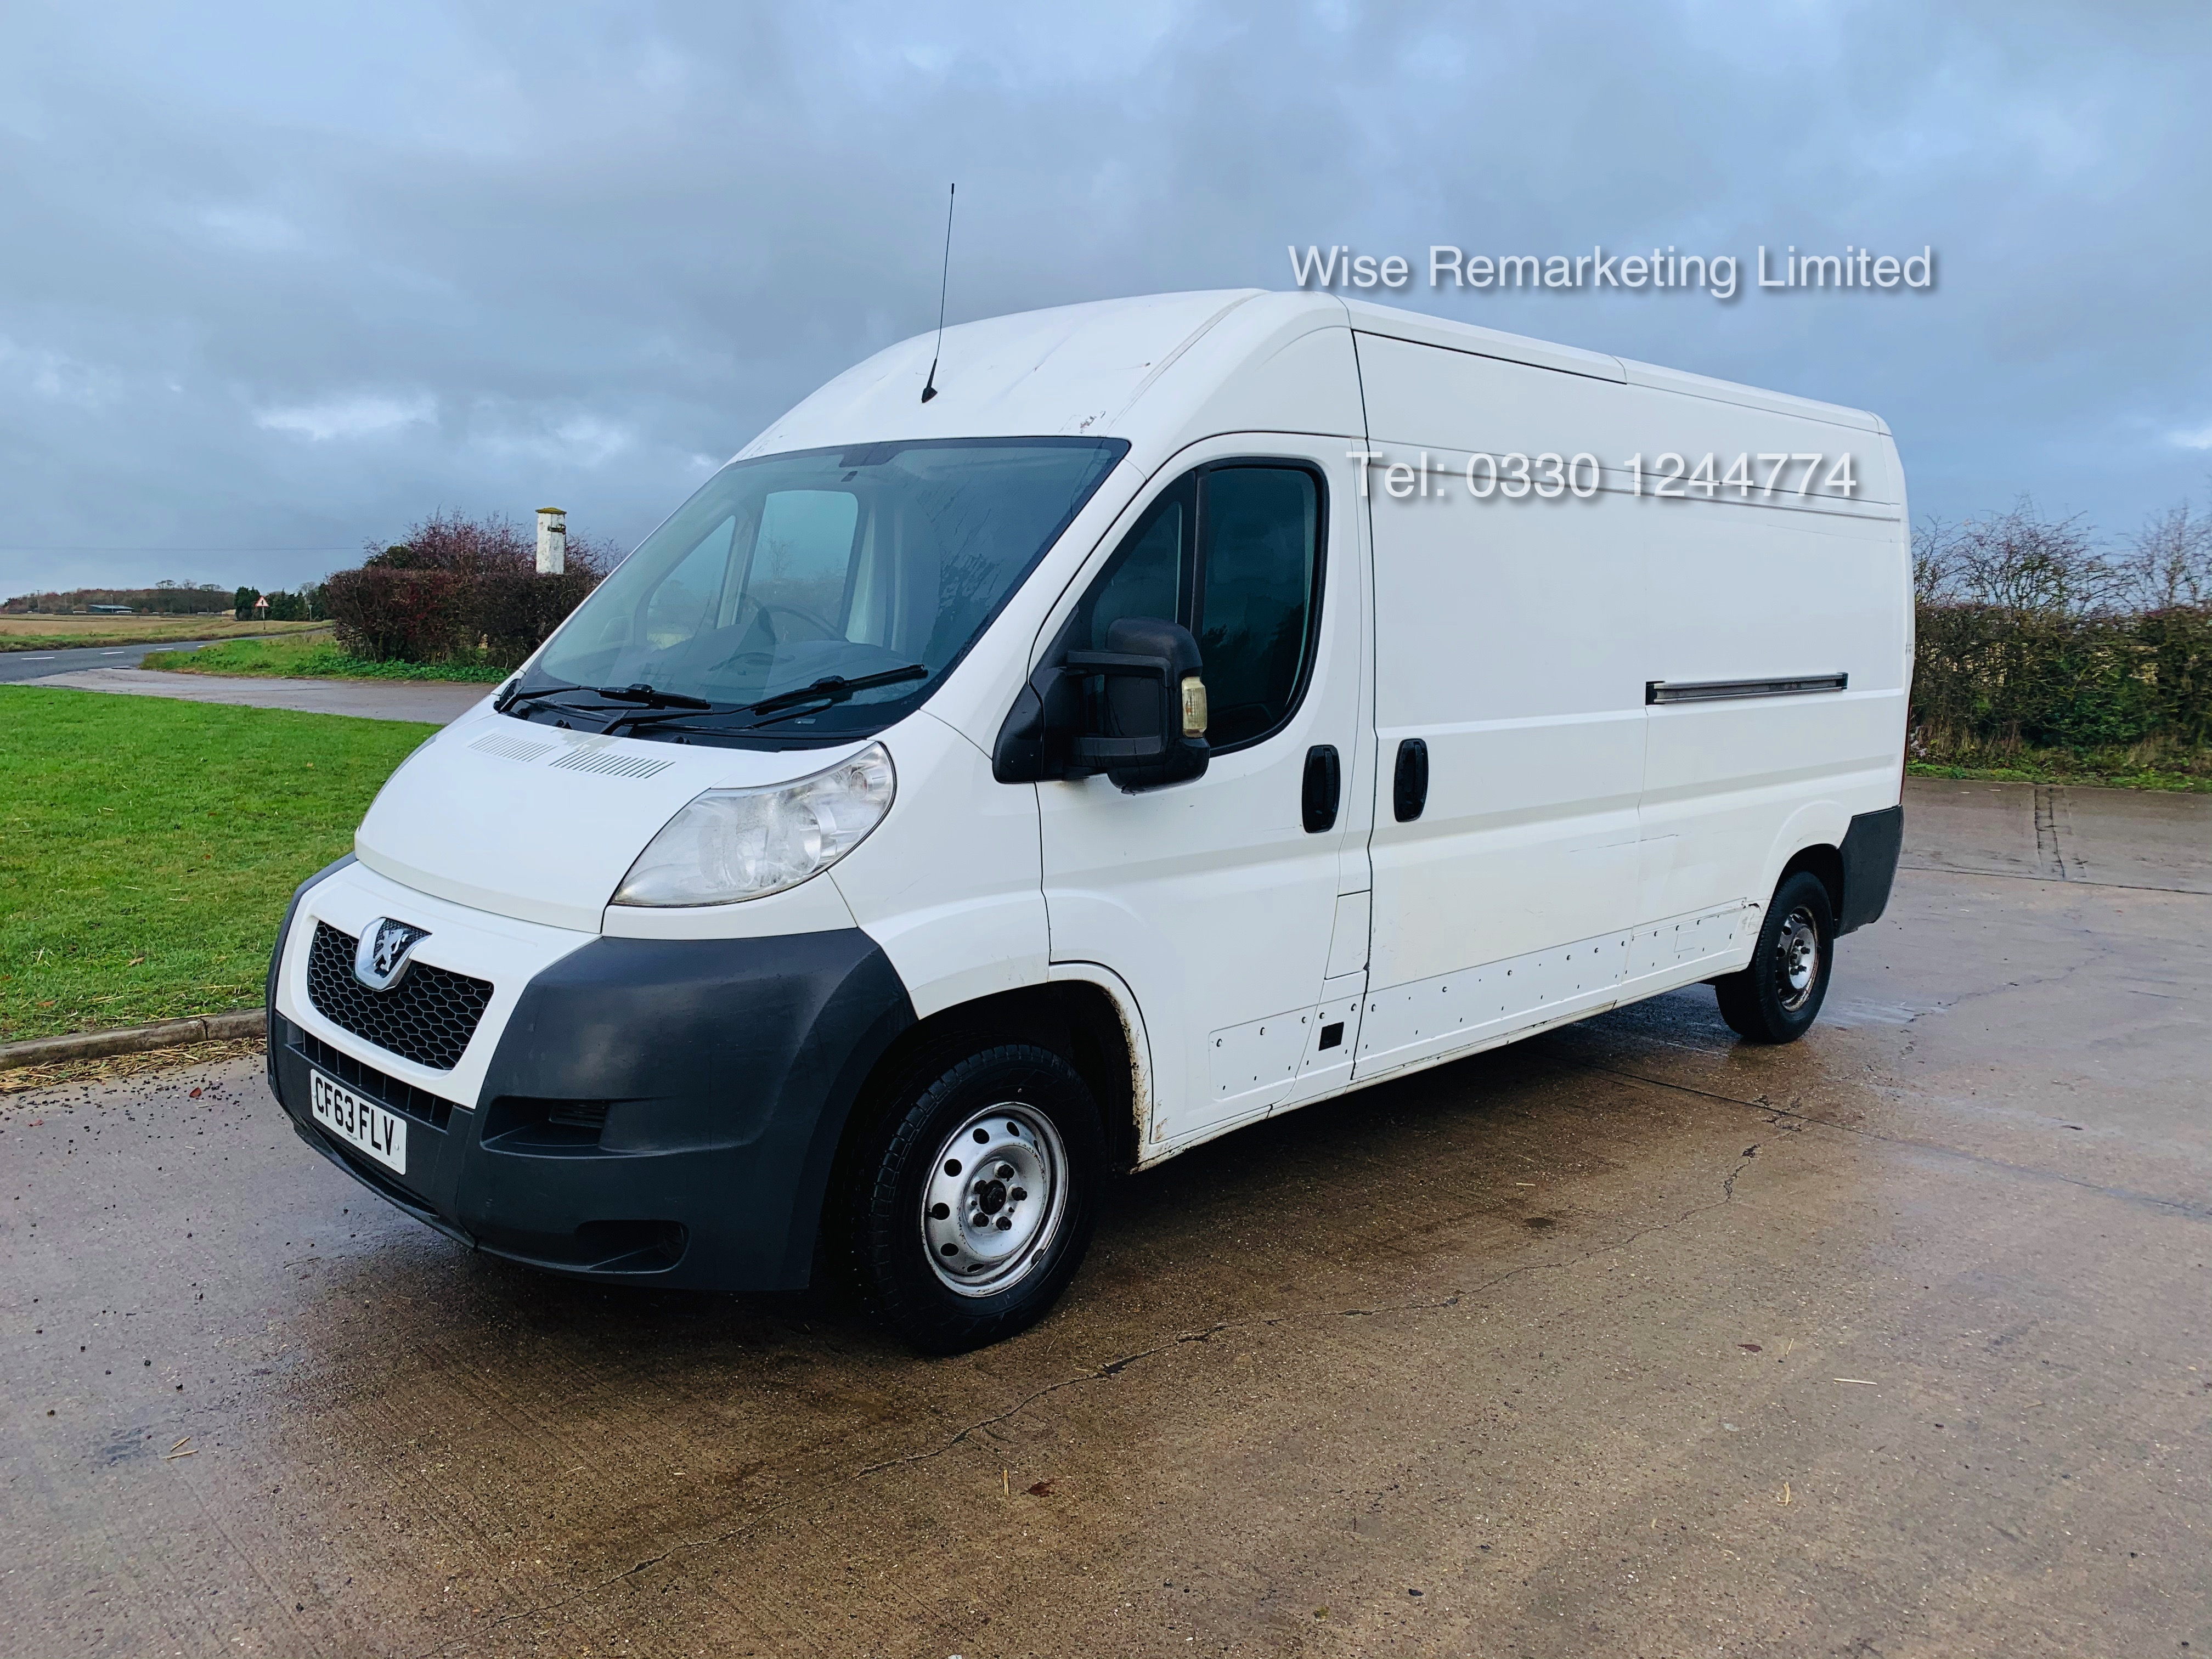 Peugeot Boxer 335 2.2 HDi Long Wheel Base( L3H2) 2014 Model - 1 Keeper From New